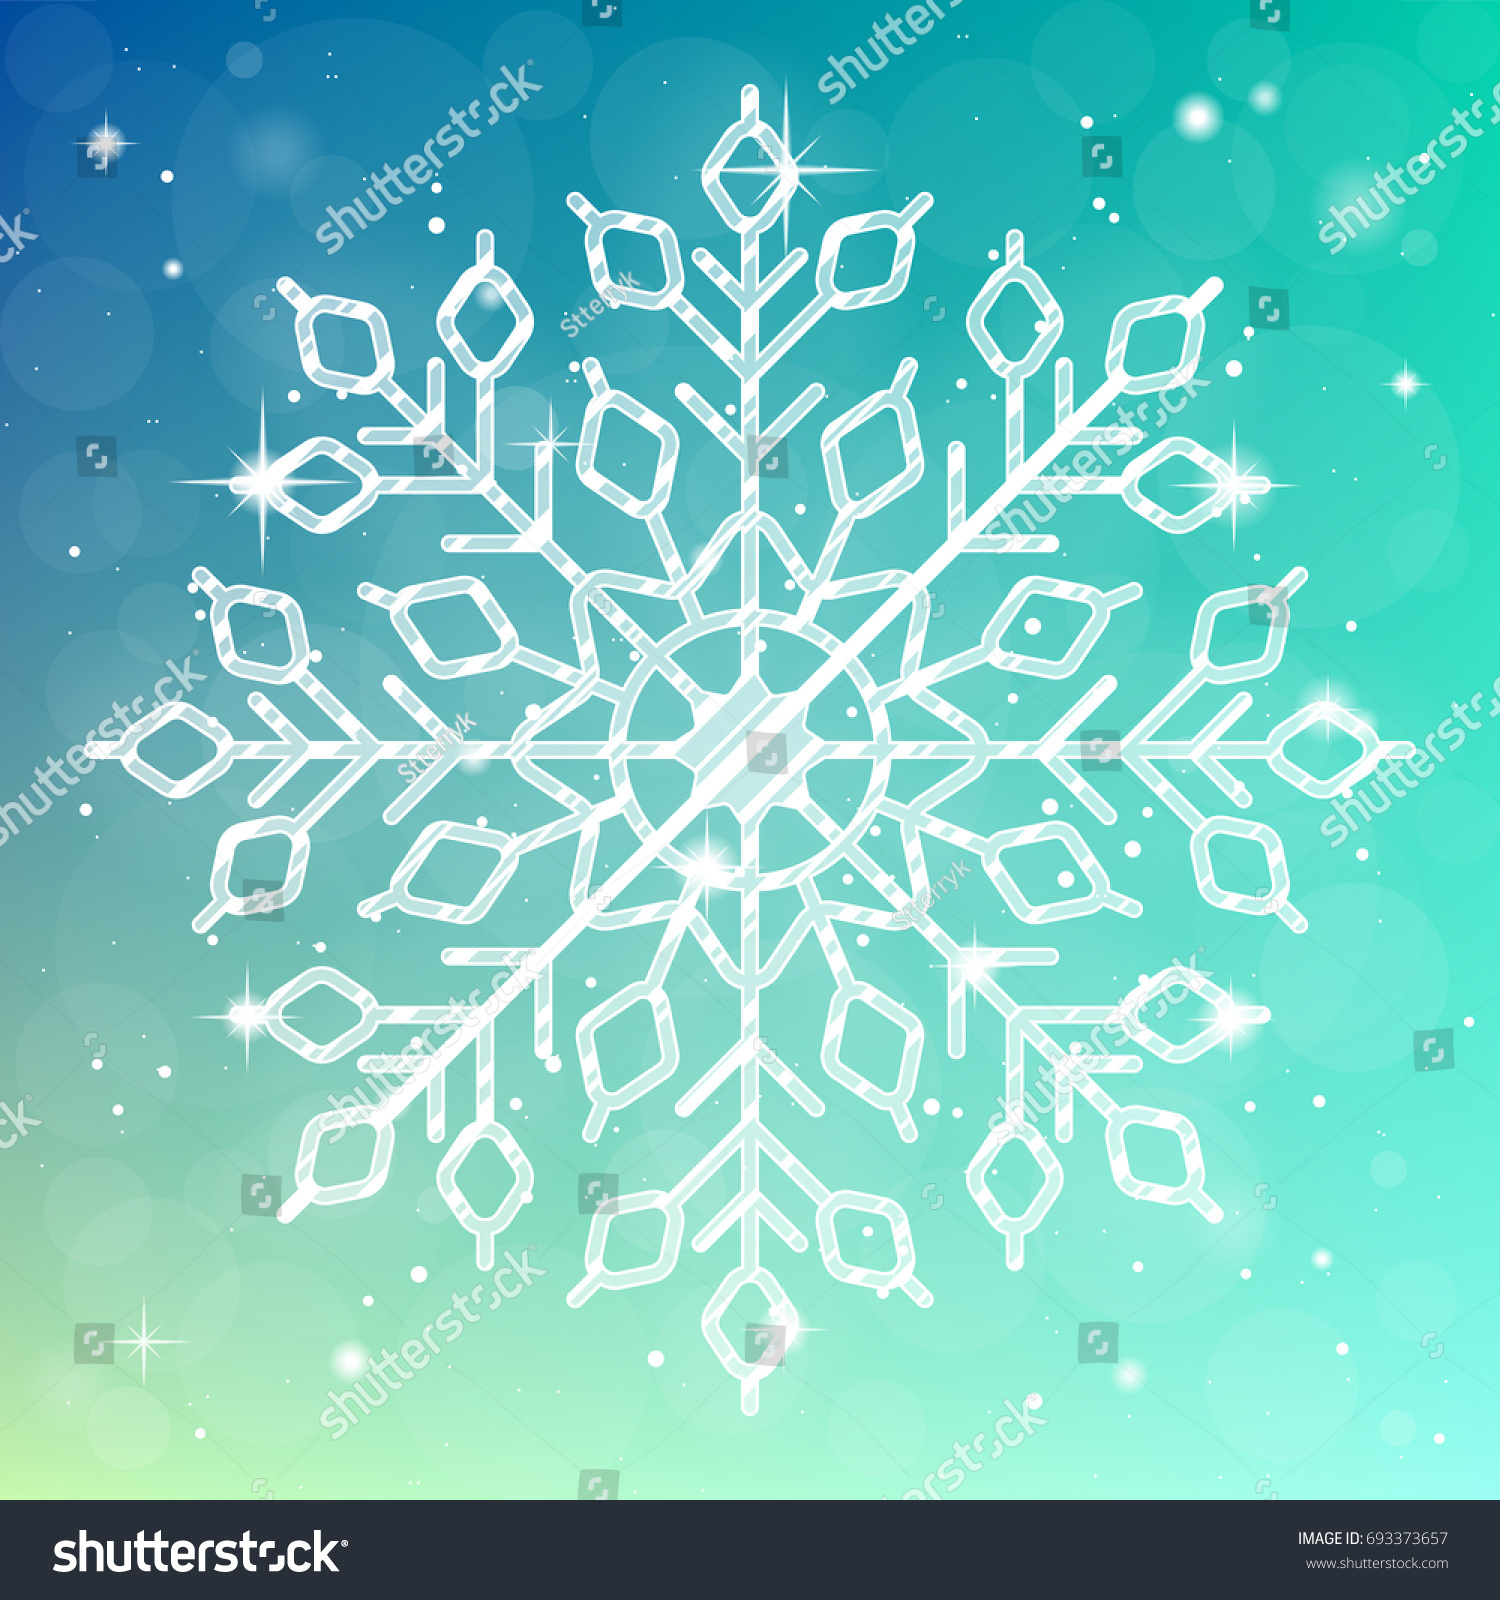 Ice Cream Background Sparking Shiny Decoration Free Vector: Xmas Shiny Snowflake Banner Winter Detailed Stock Vector